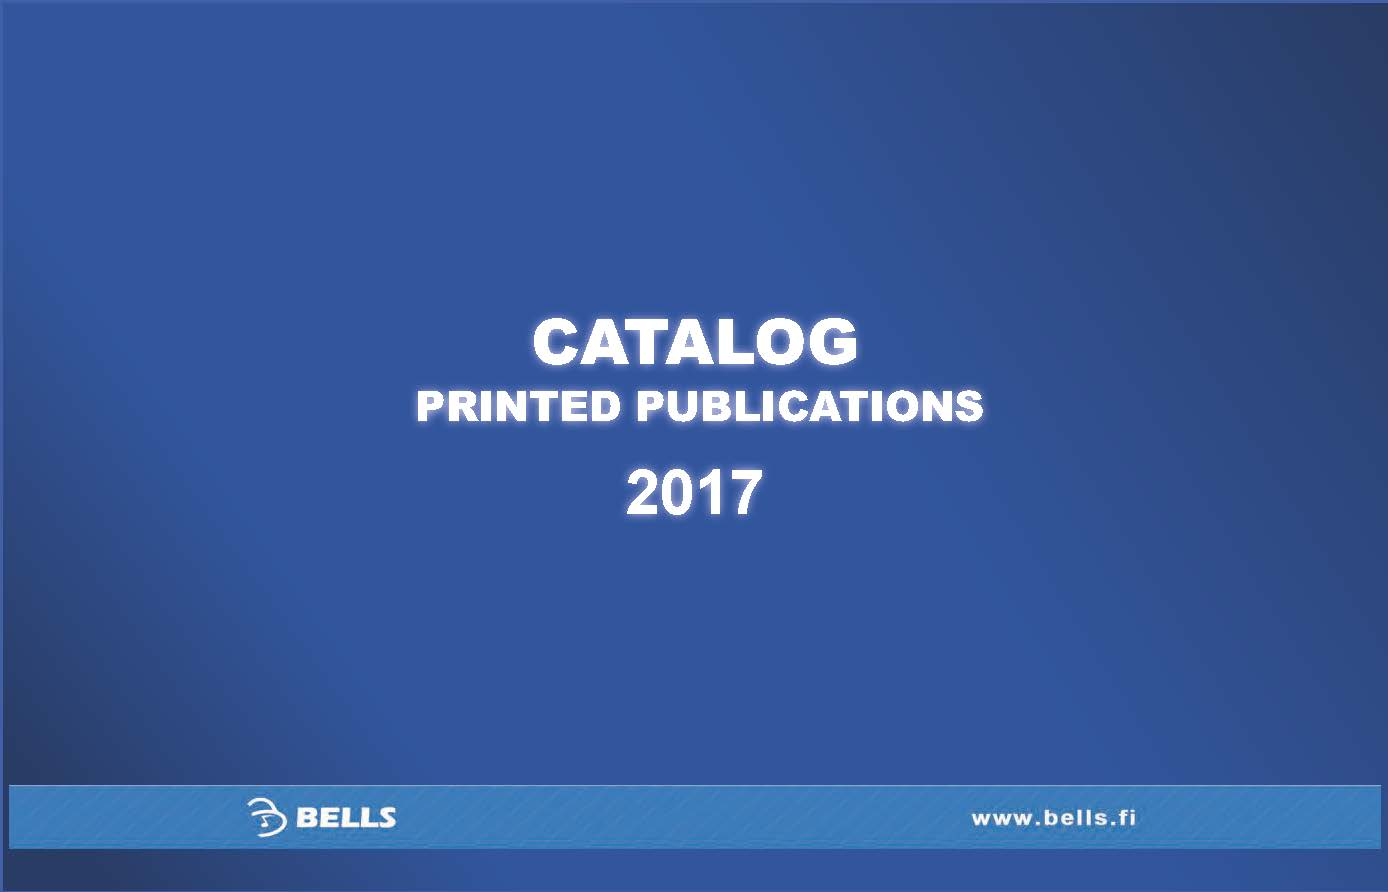 Catalog of printed publications